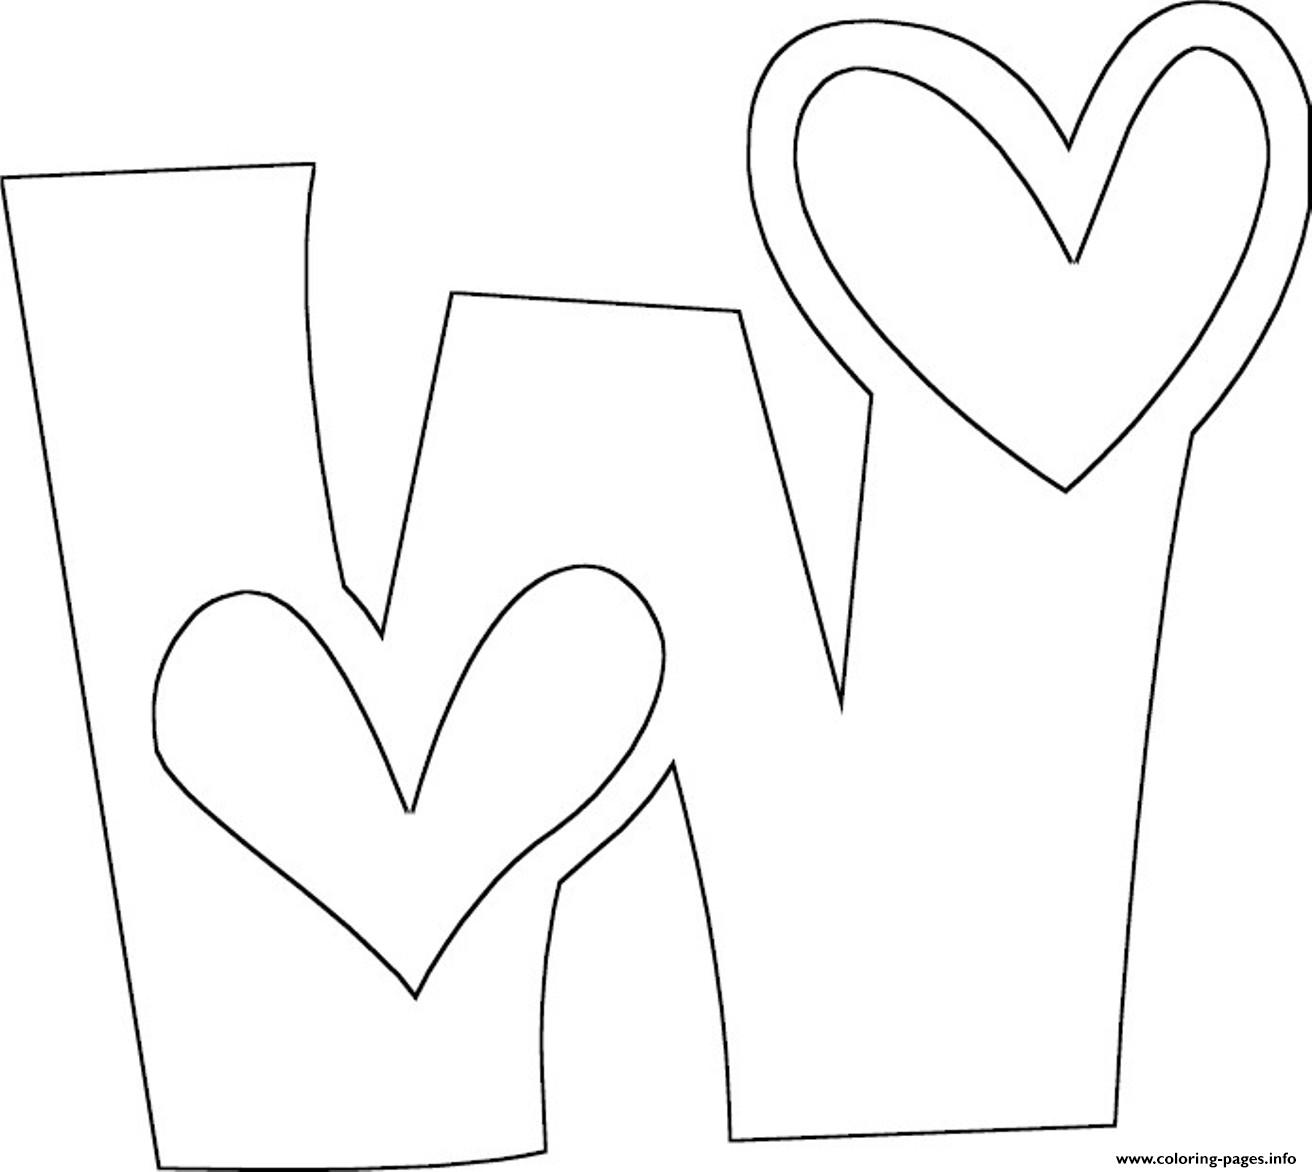 Alphabet Coloring Pages W : Love w free alphabet s f coloring pages printable